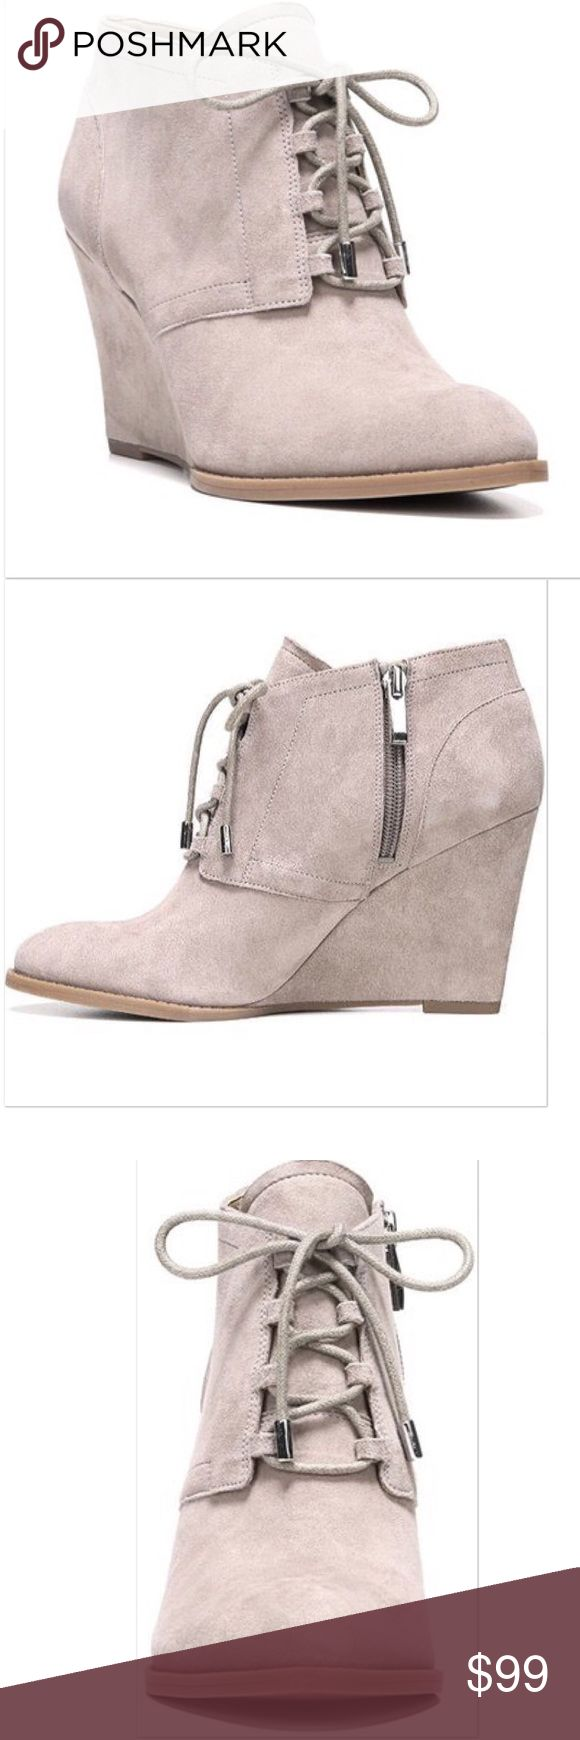 "NIB Franco Sarto Lennon Wedge Booties Ultra-chic wedge bootie shaped in velvety suede.  Self-covered wedge heel, 3 1/2"".  Almond toe.  Lace-up.  Man-made lining and sole.  Padded insole.  Color: Mushroom. Franco Sarto Shoes Ankle Boots & Booties"